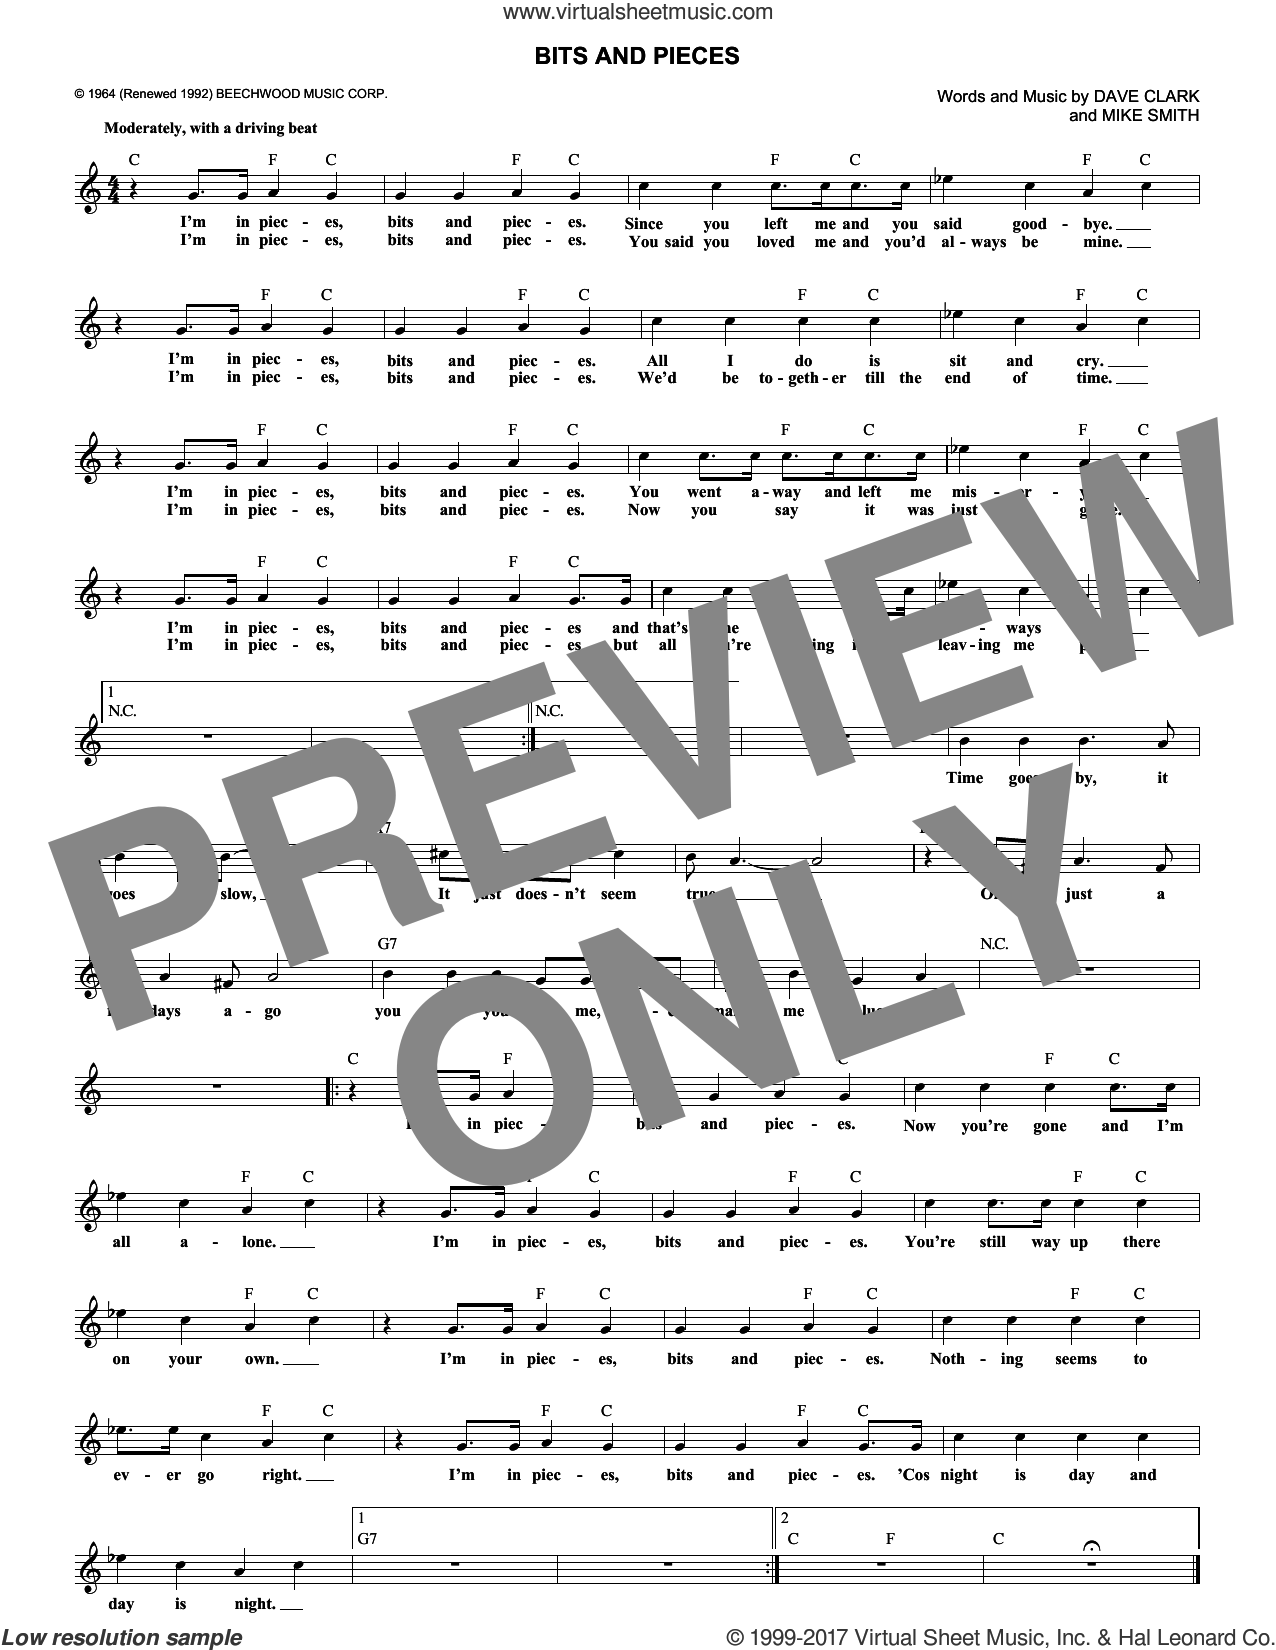 Bits And Pieces sheet music for voice and other instruments (fake book) by Michael W. Smith and Dave Clark Five and Dave Clark. Score Image Preview.